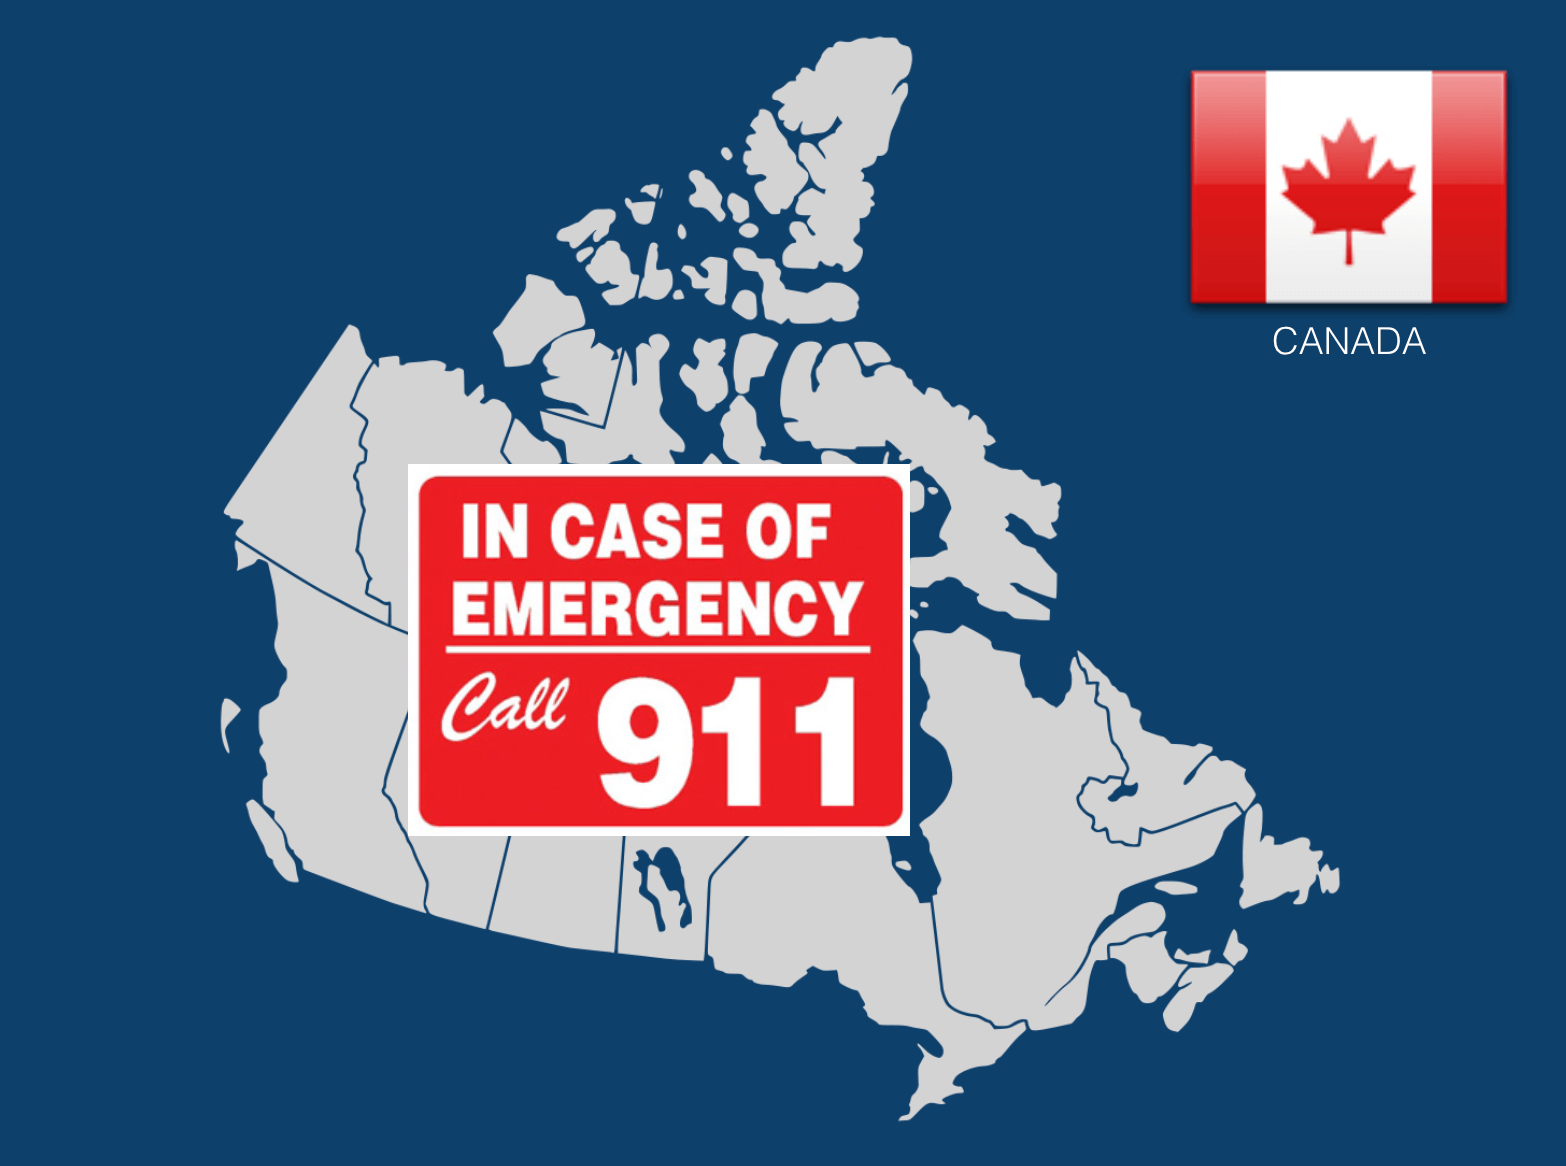 Dial 911 to call an ambulance in Canada